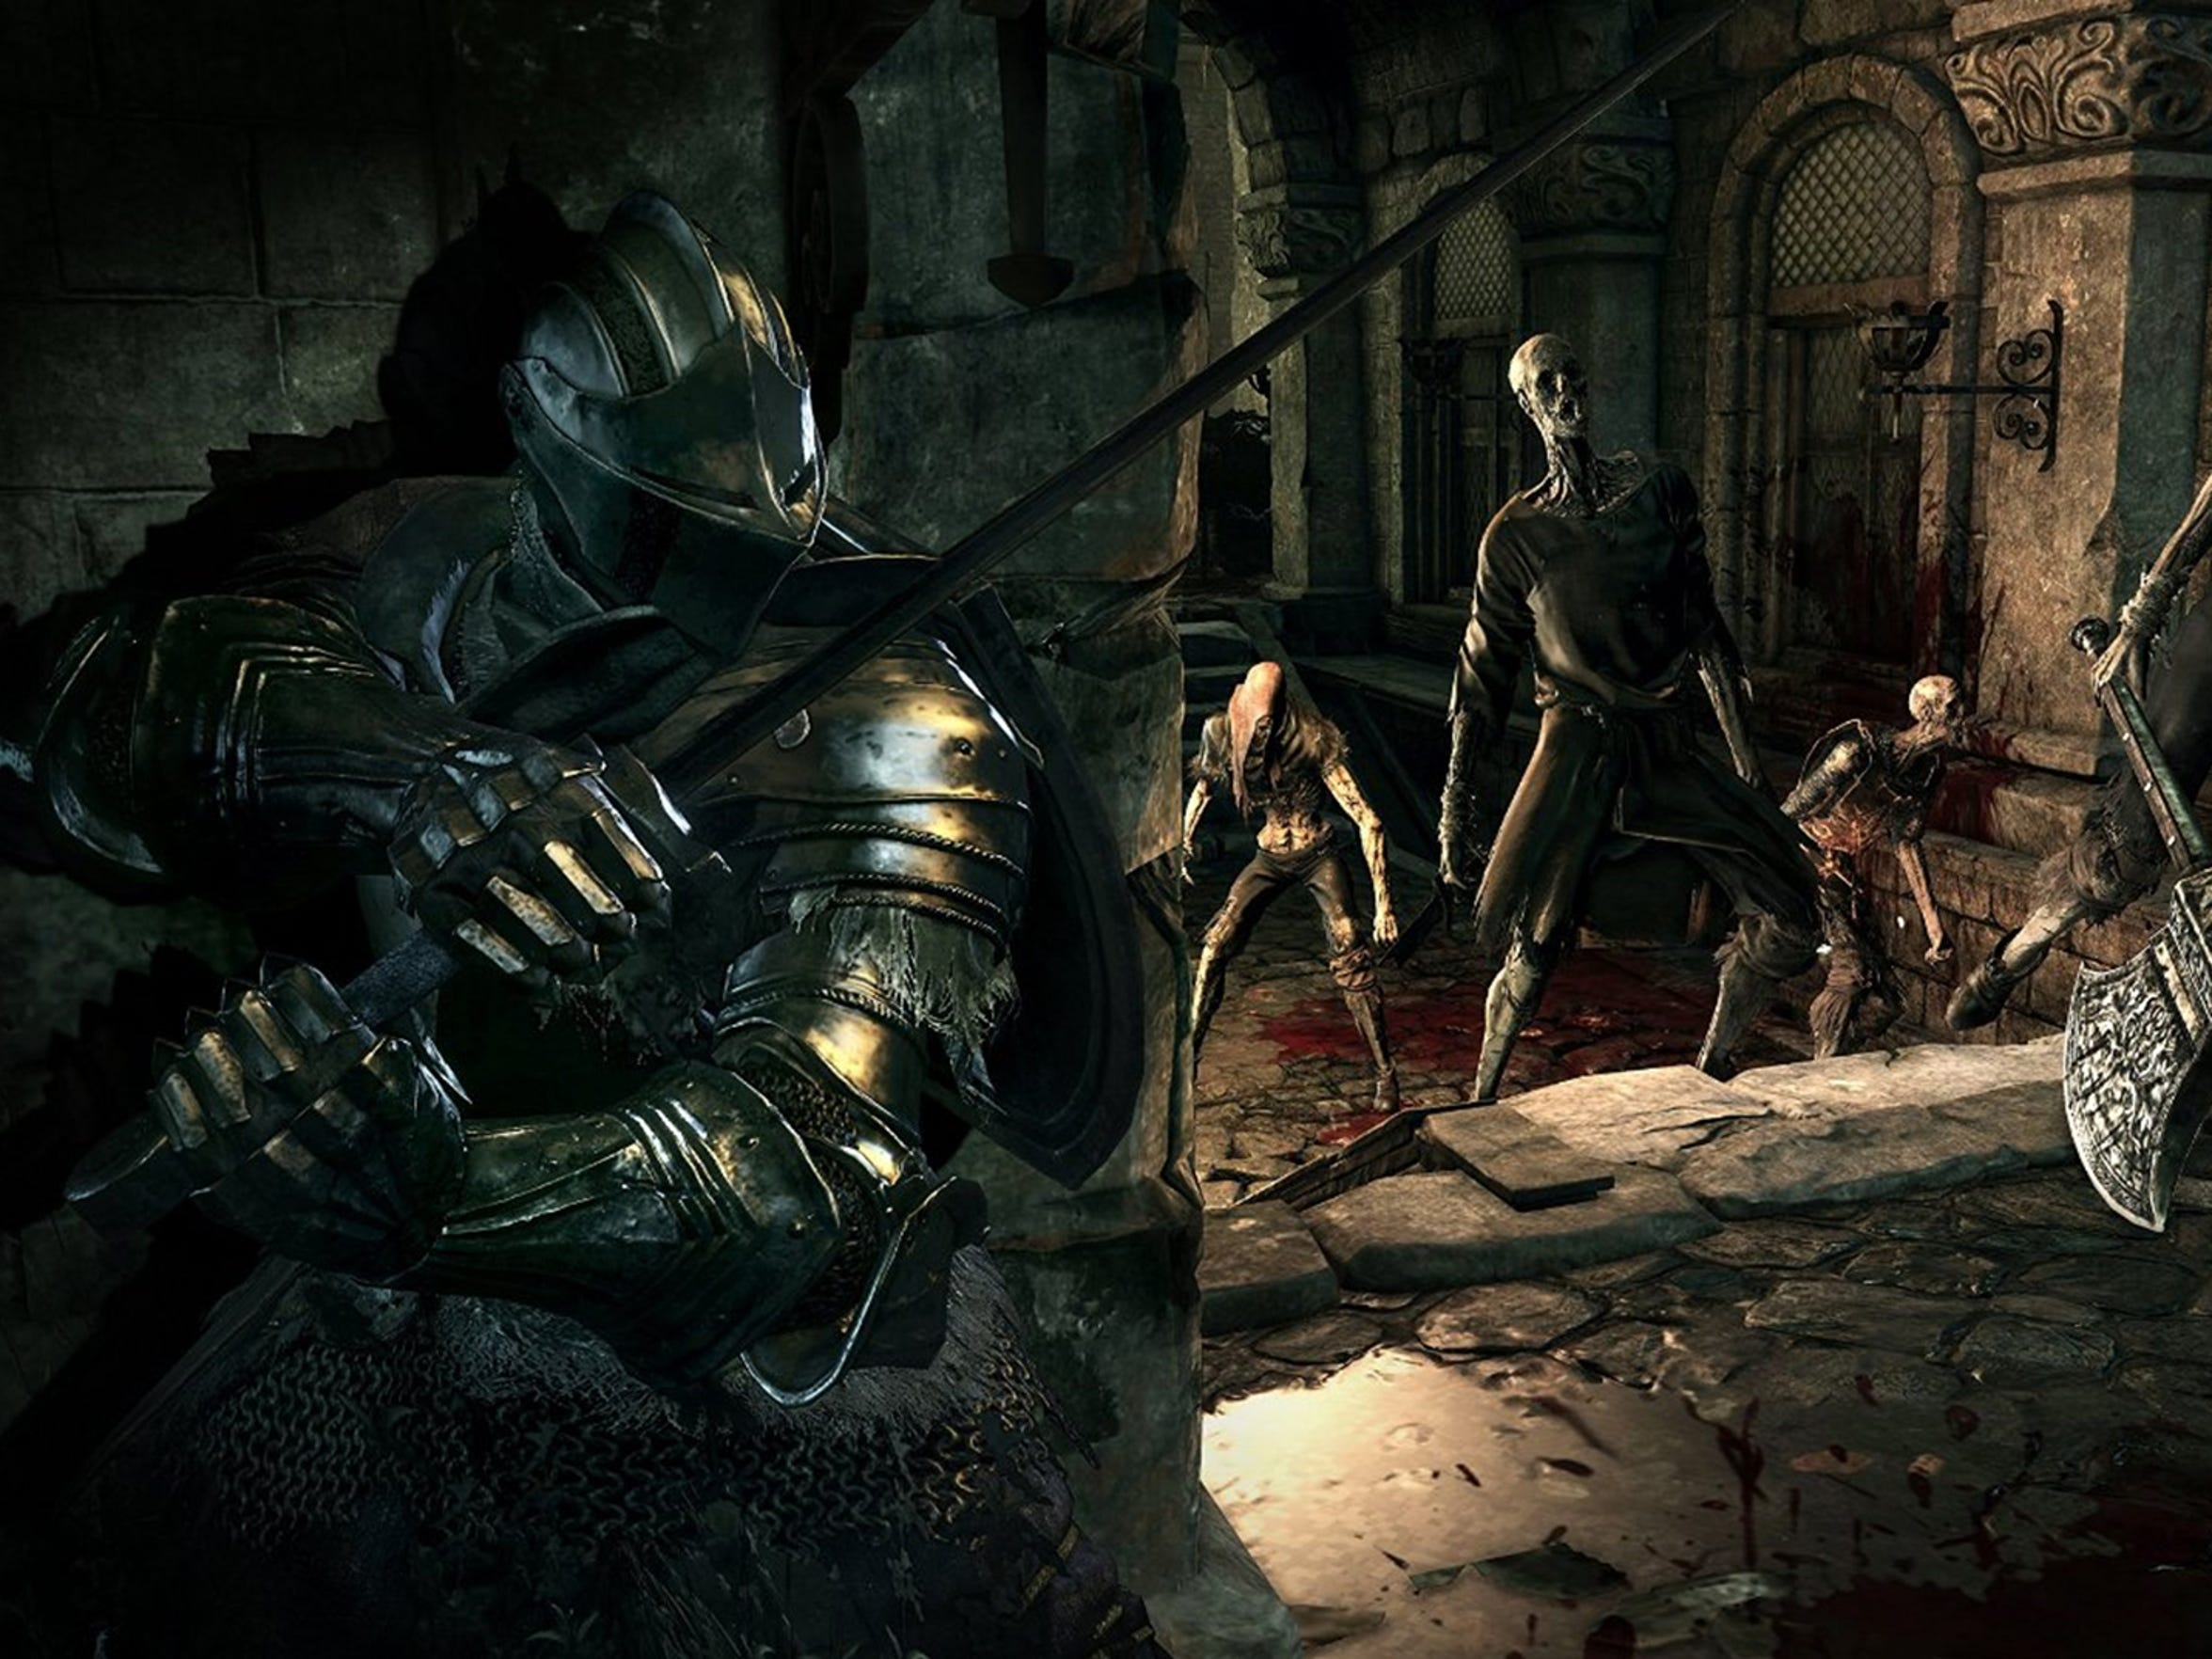 Discretion is oftentimes the better part of valor in Dark Souls III.